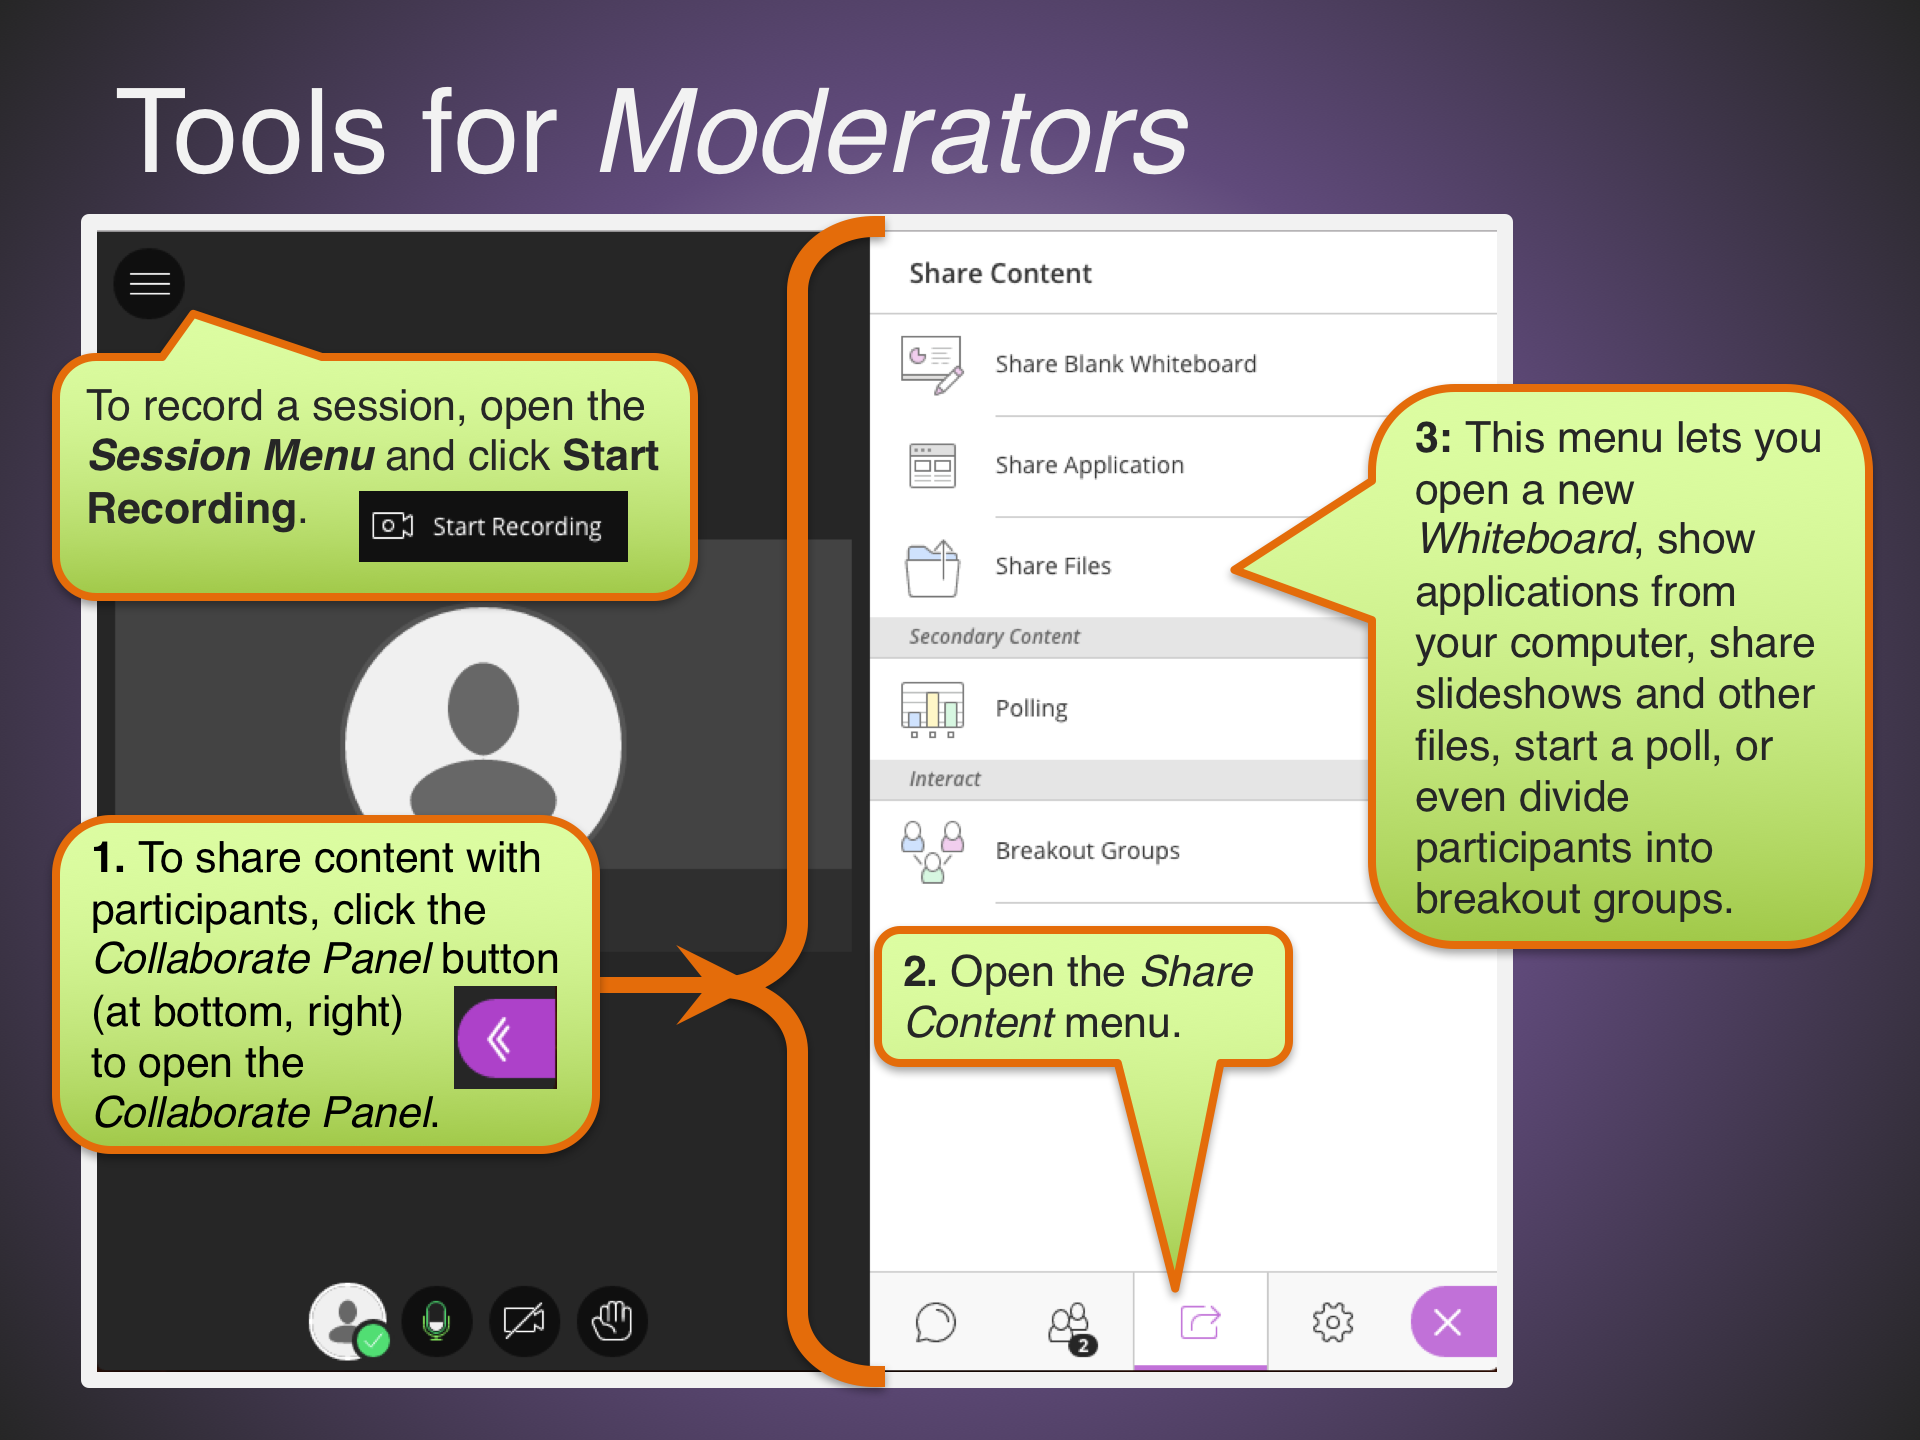 Tools for Moderators